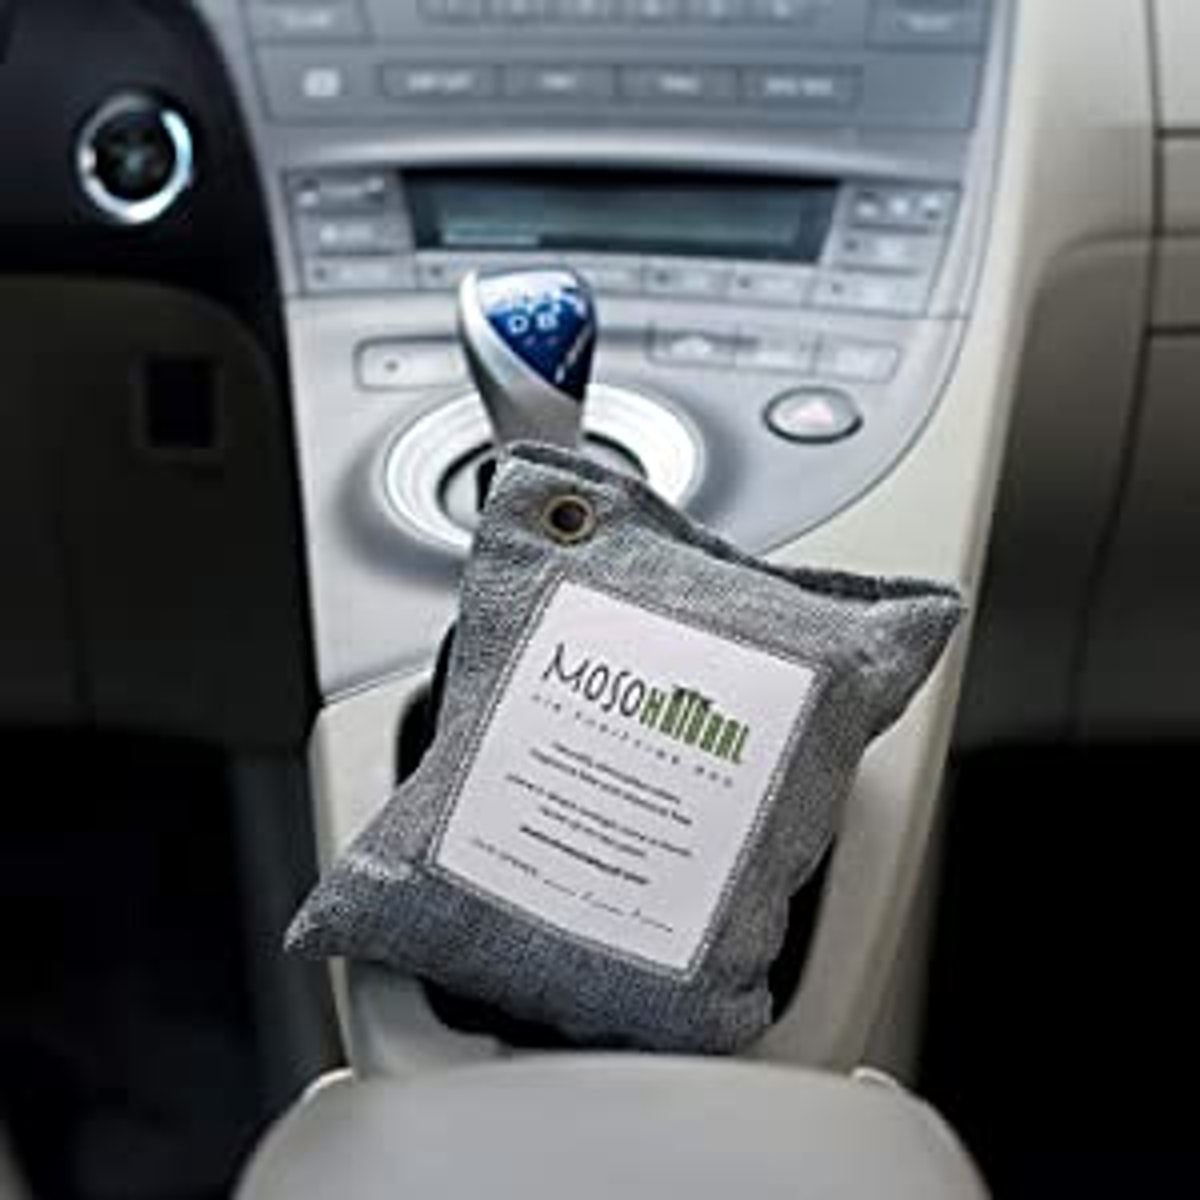 MOSO NATURAL Charcoal Air Purifying Bags (3-Pack)